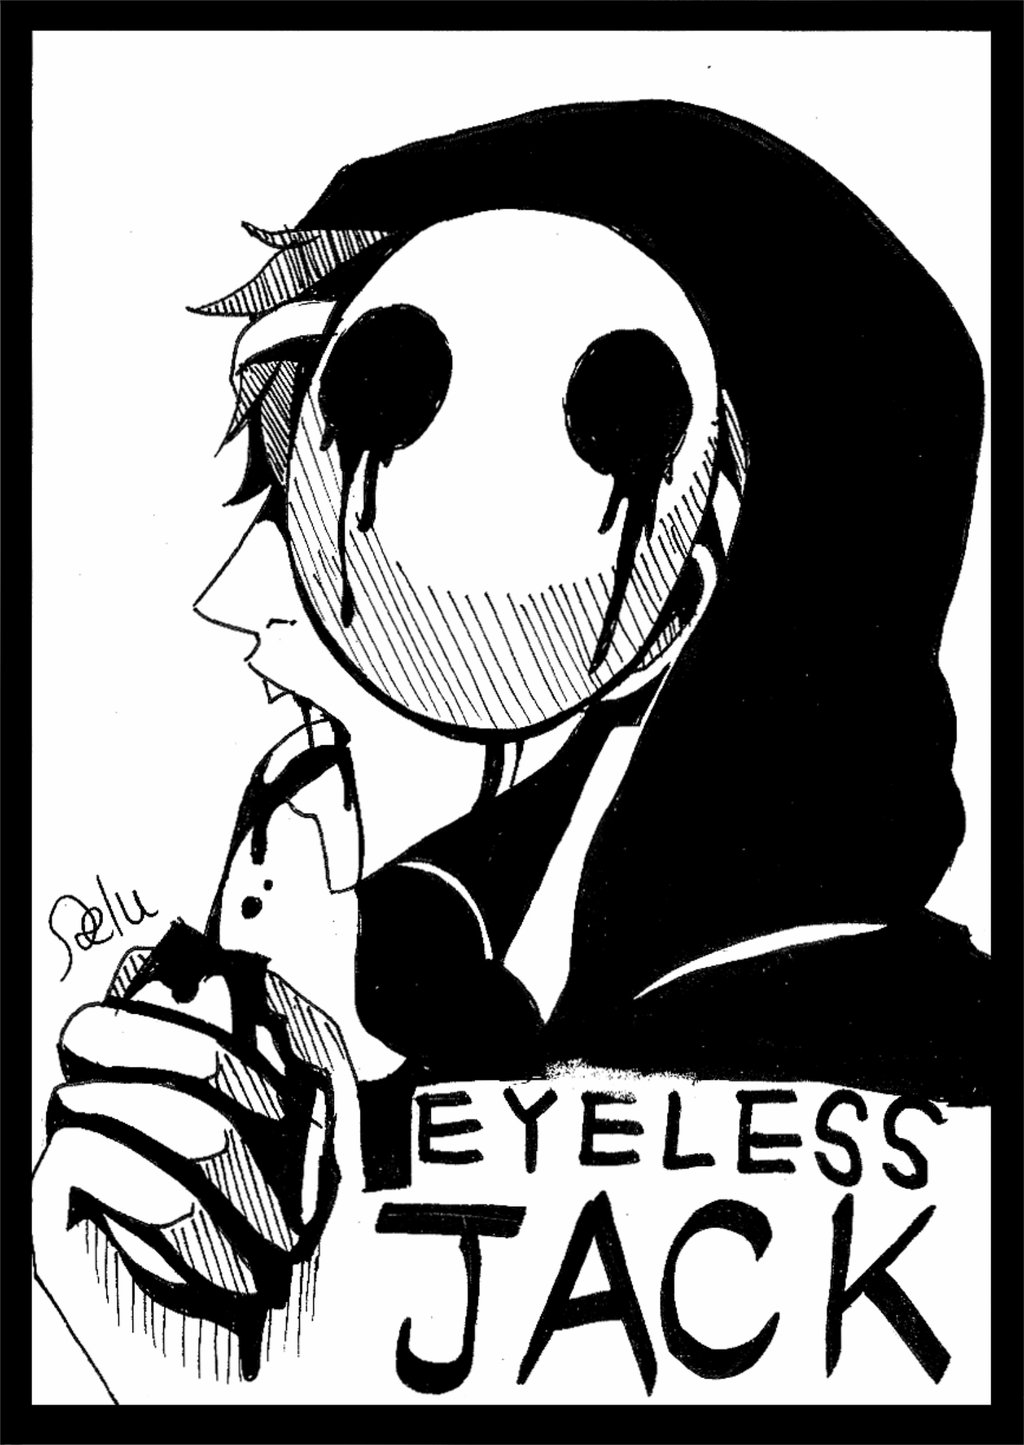 Drawn eyeless jack hot By Eyeless Eyeless by DeluCat